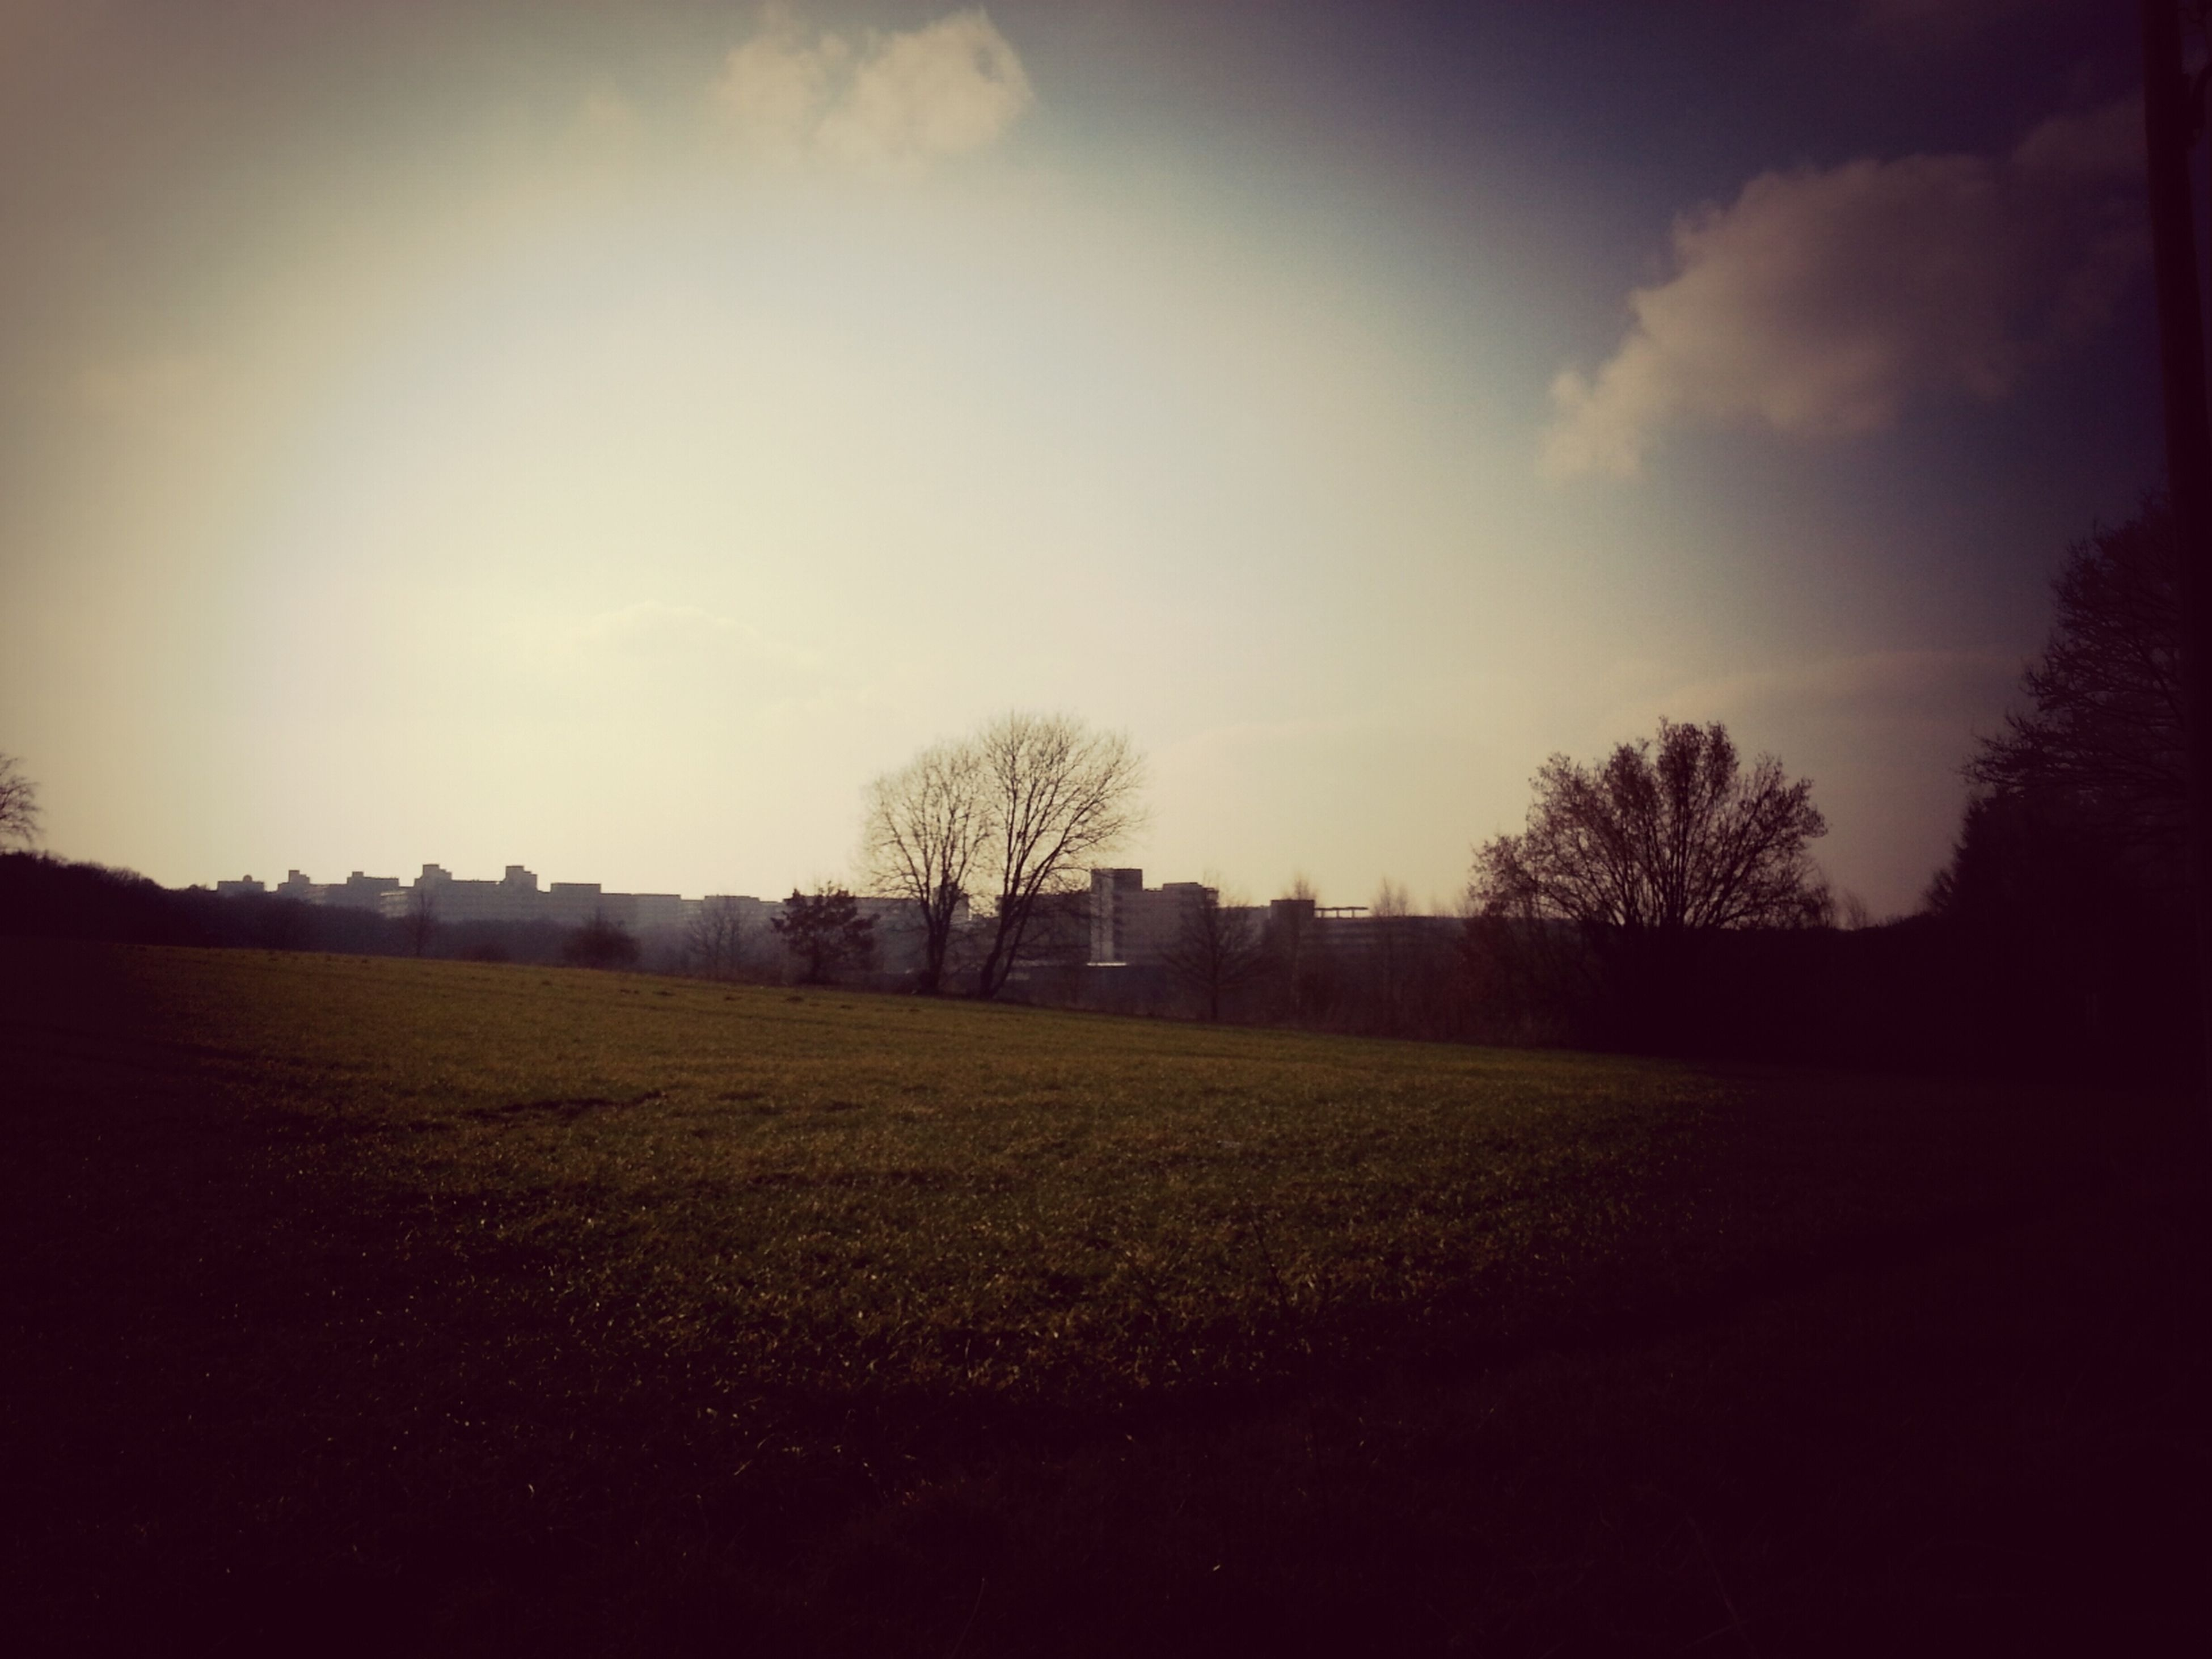 field, tree, landscape, sky, tranquility, tranquil scene, grass, beauty in nature, scenics, nature, silhouette, growth, rural scene, bare tree, sunset, grassy, cloud - sky, no people, cloud, outdoors